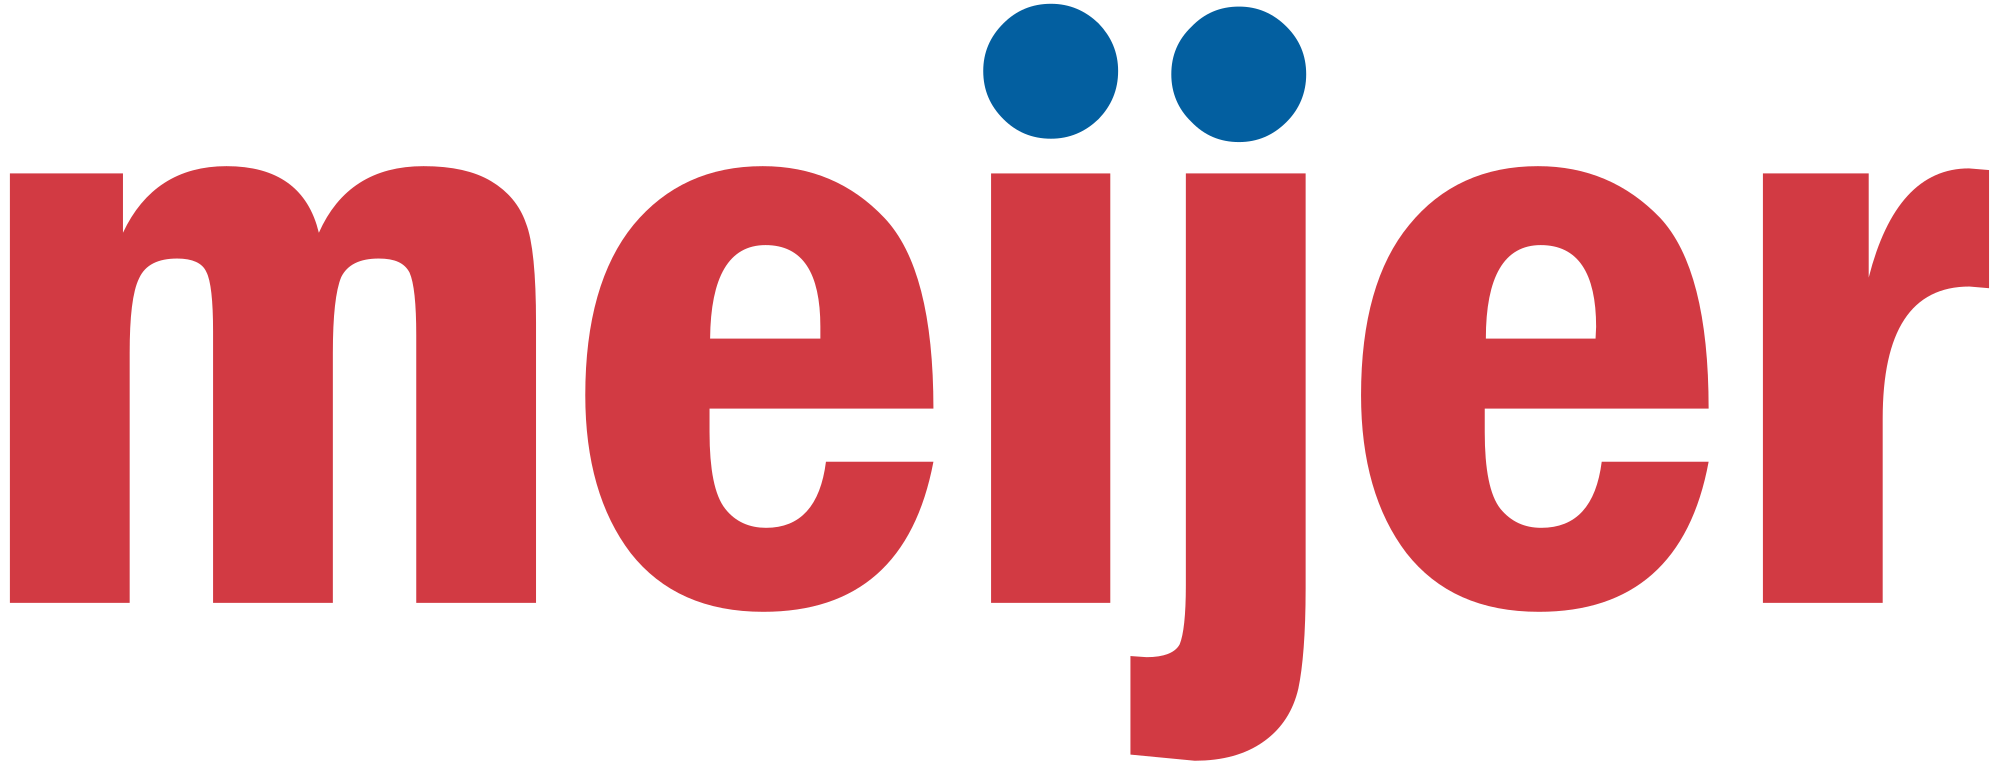 Meijer logo download free clipart with a transparent.